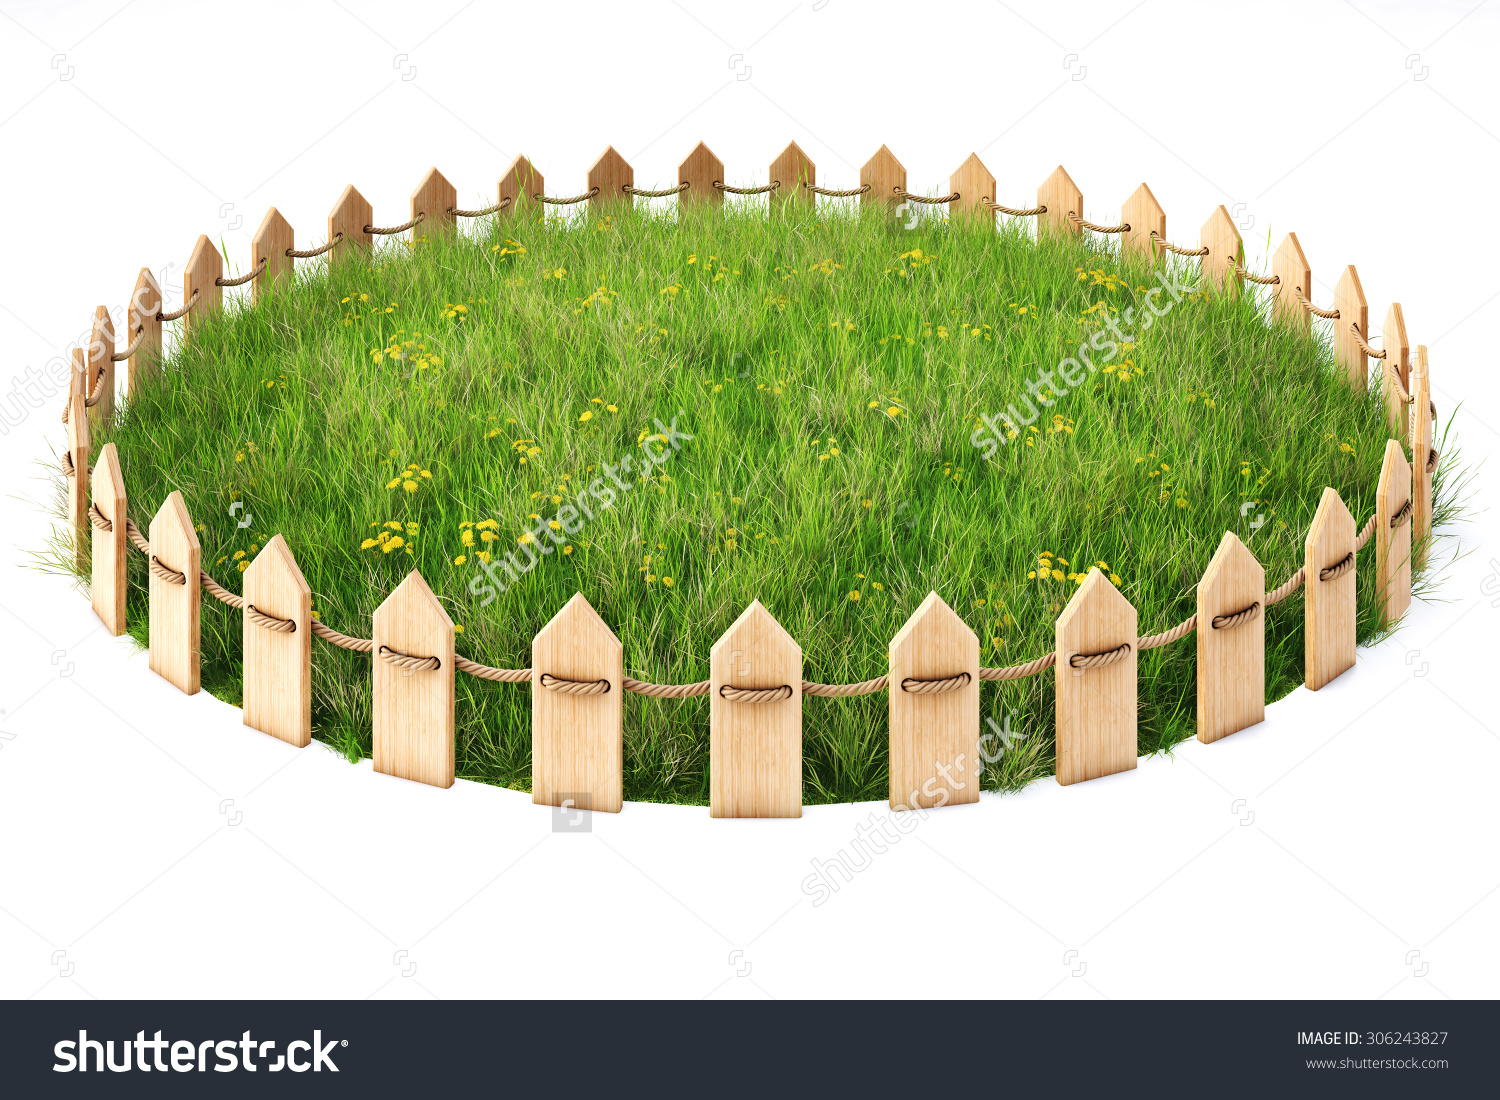 Round Island Grass Lawn Enclosed By Stock Illustration 306243827.